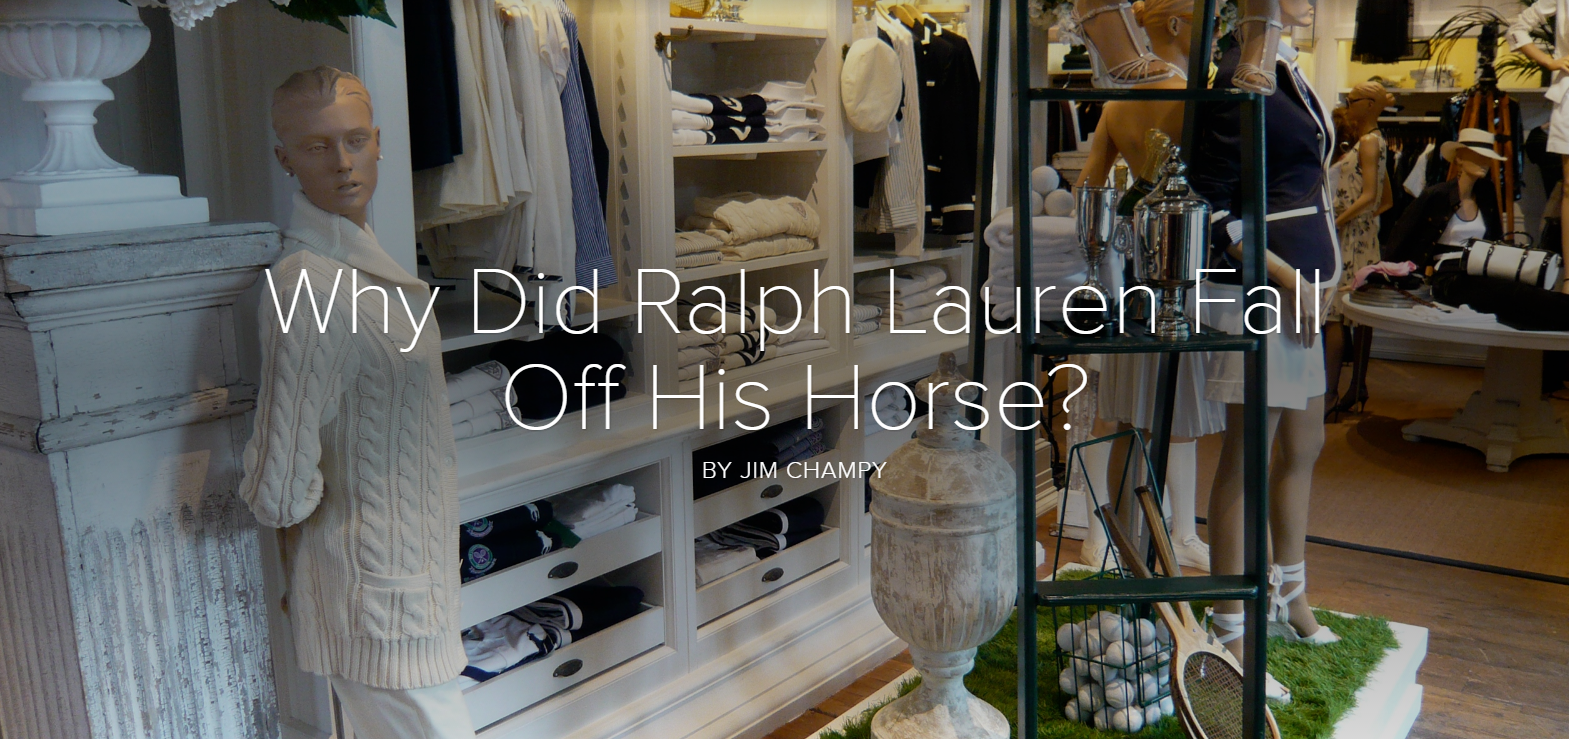 Why Did Ralph Lauren Fall Off His Horse?